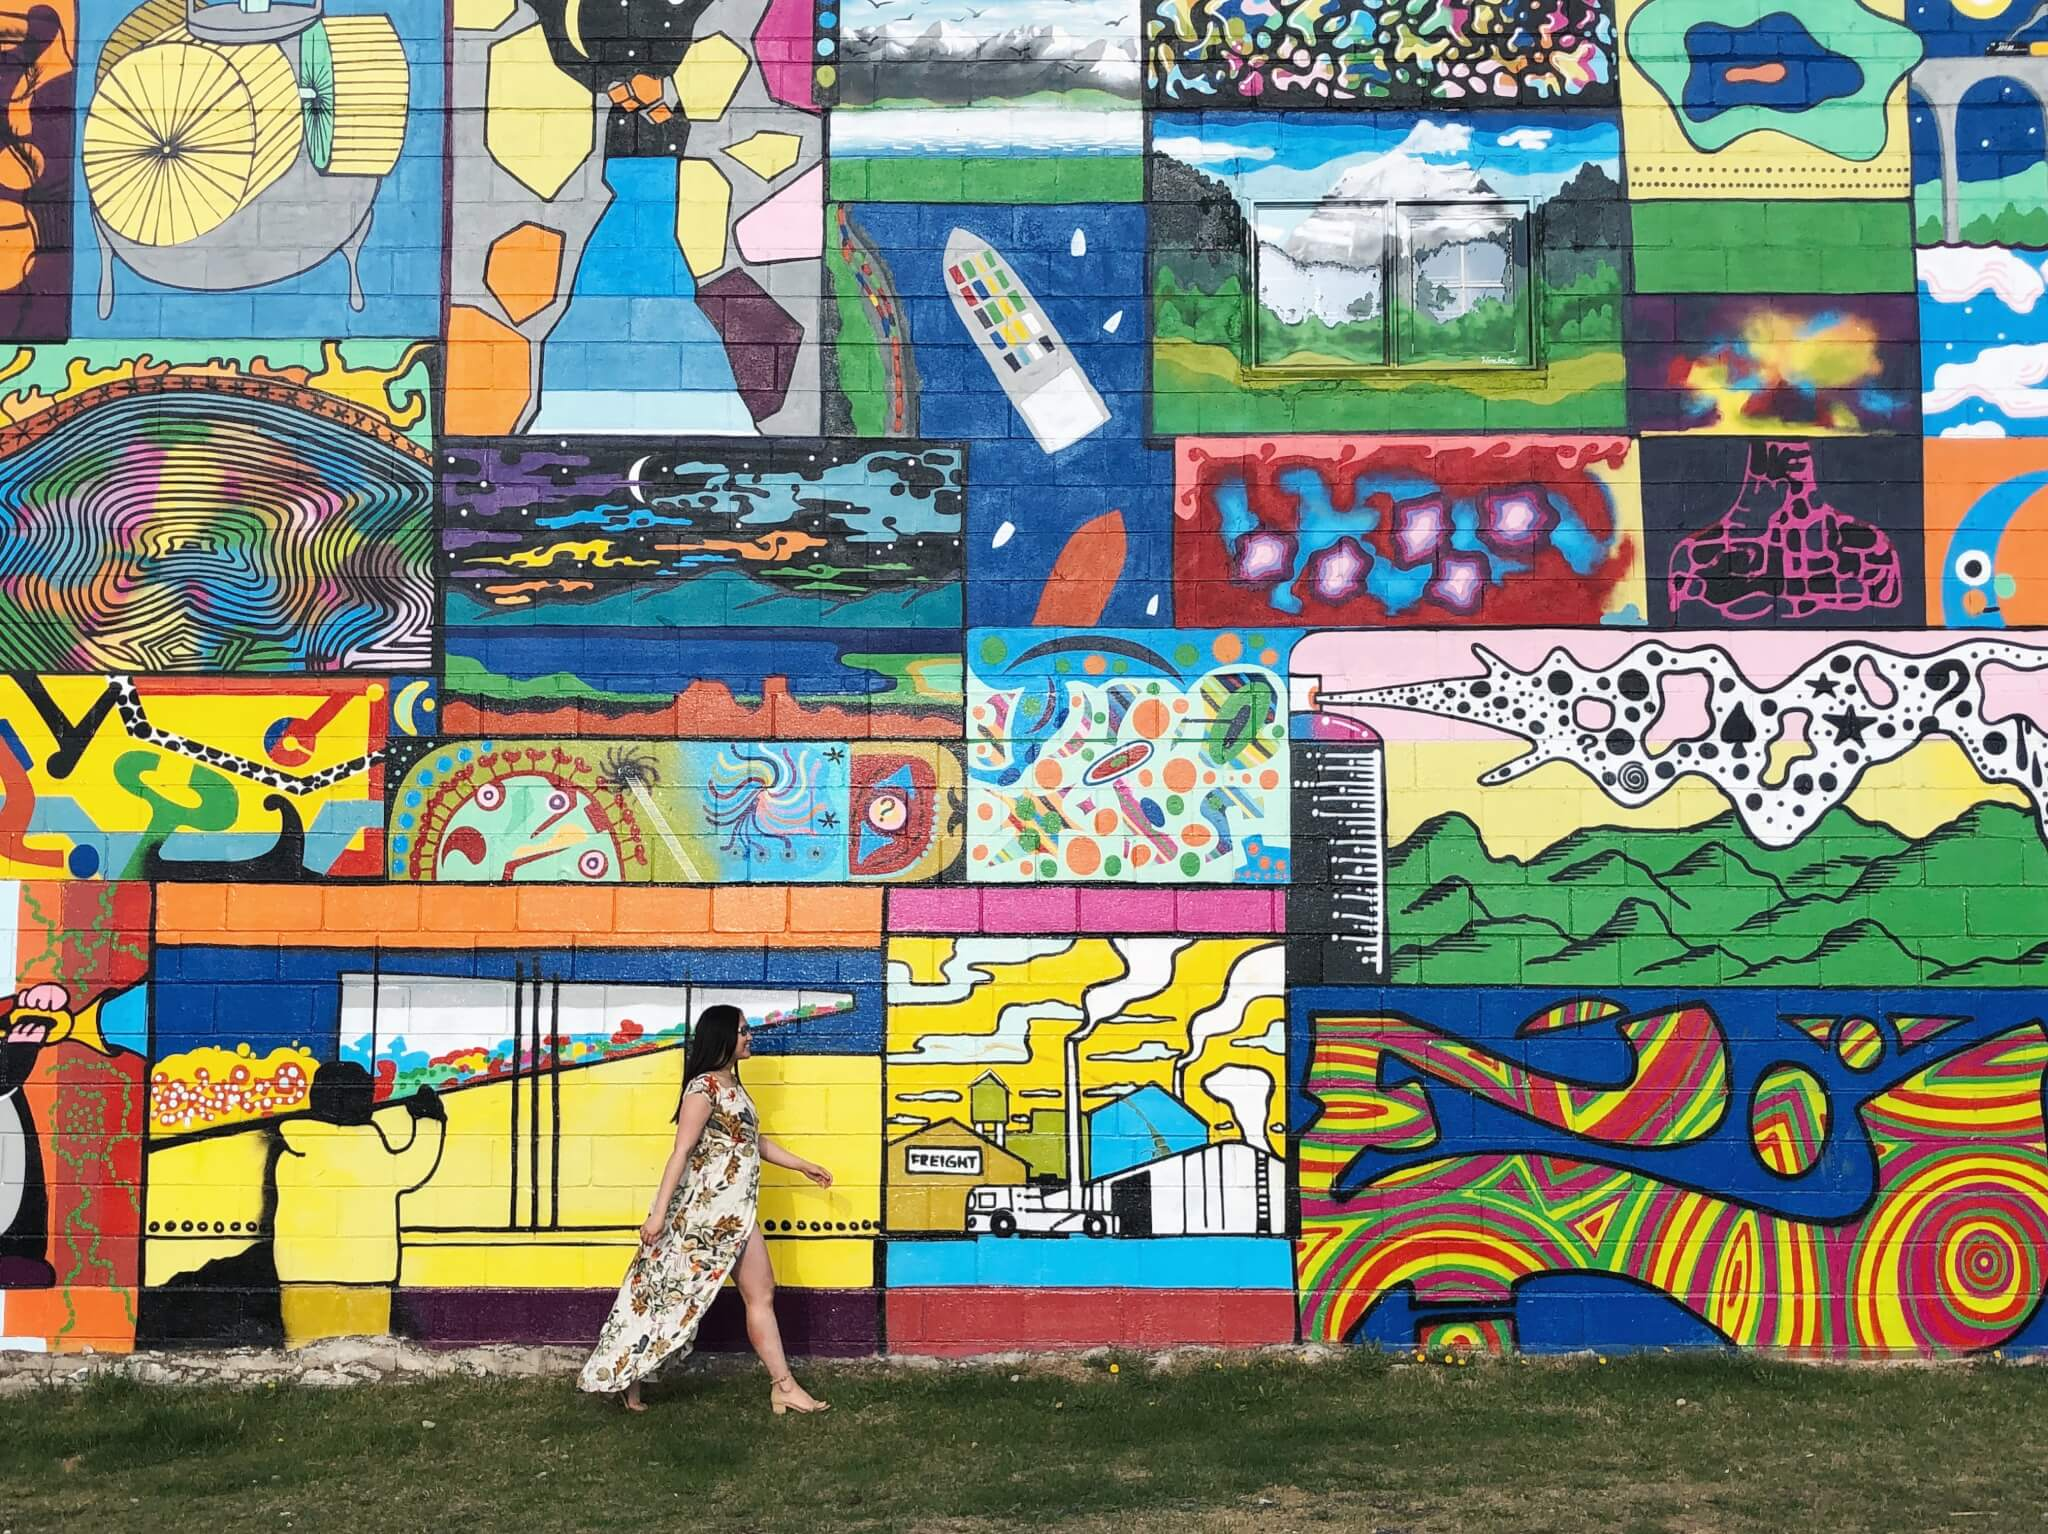 Instagrammable Walls of Edmonton Alberta Avenue